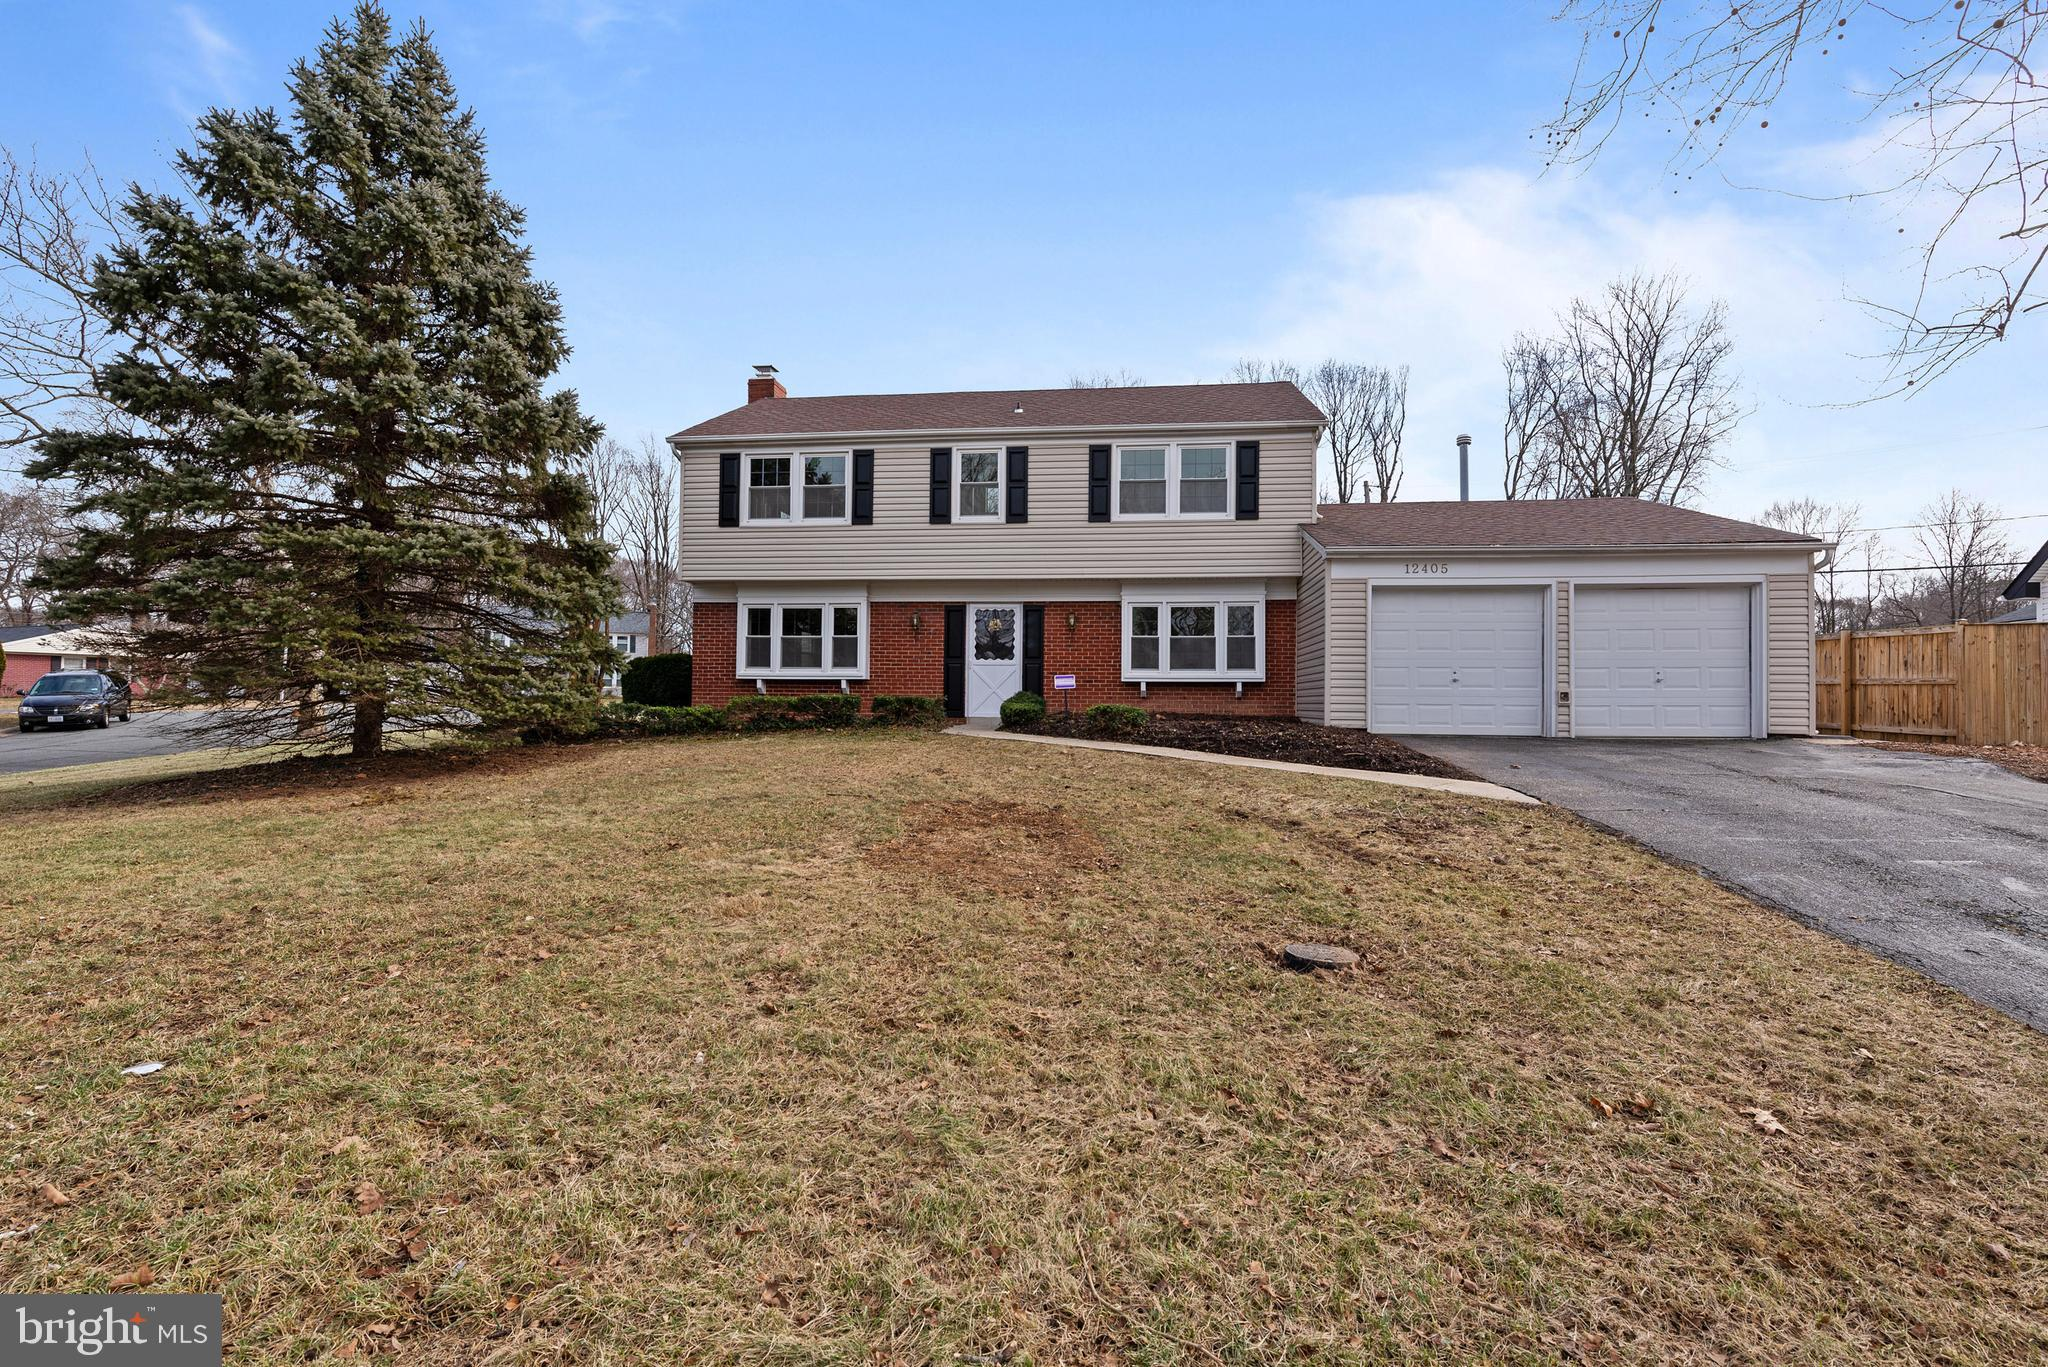 12405 RAMBLING LANE, BOWIE, MD 20715